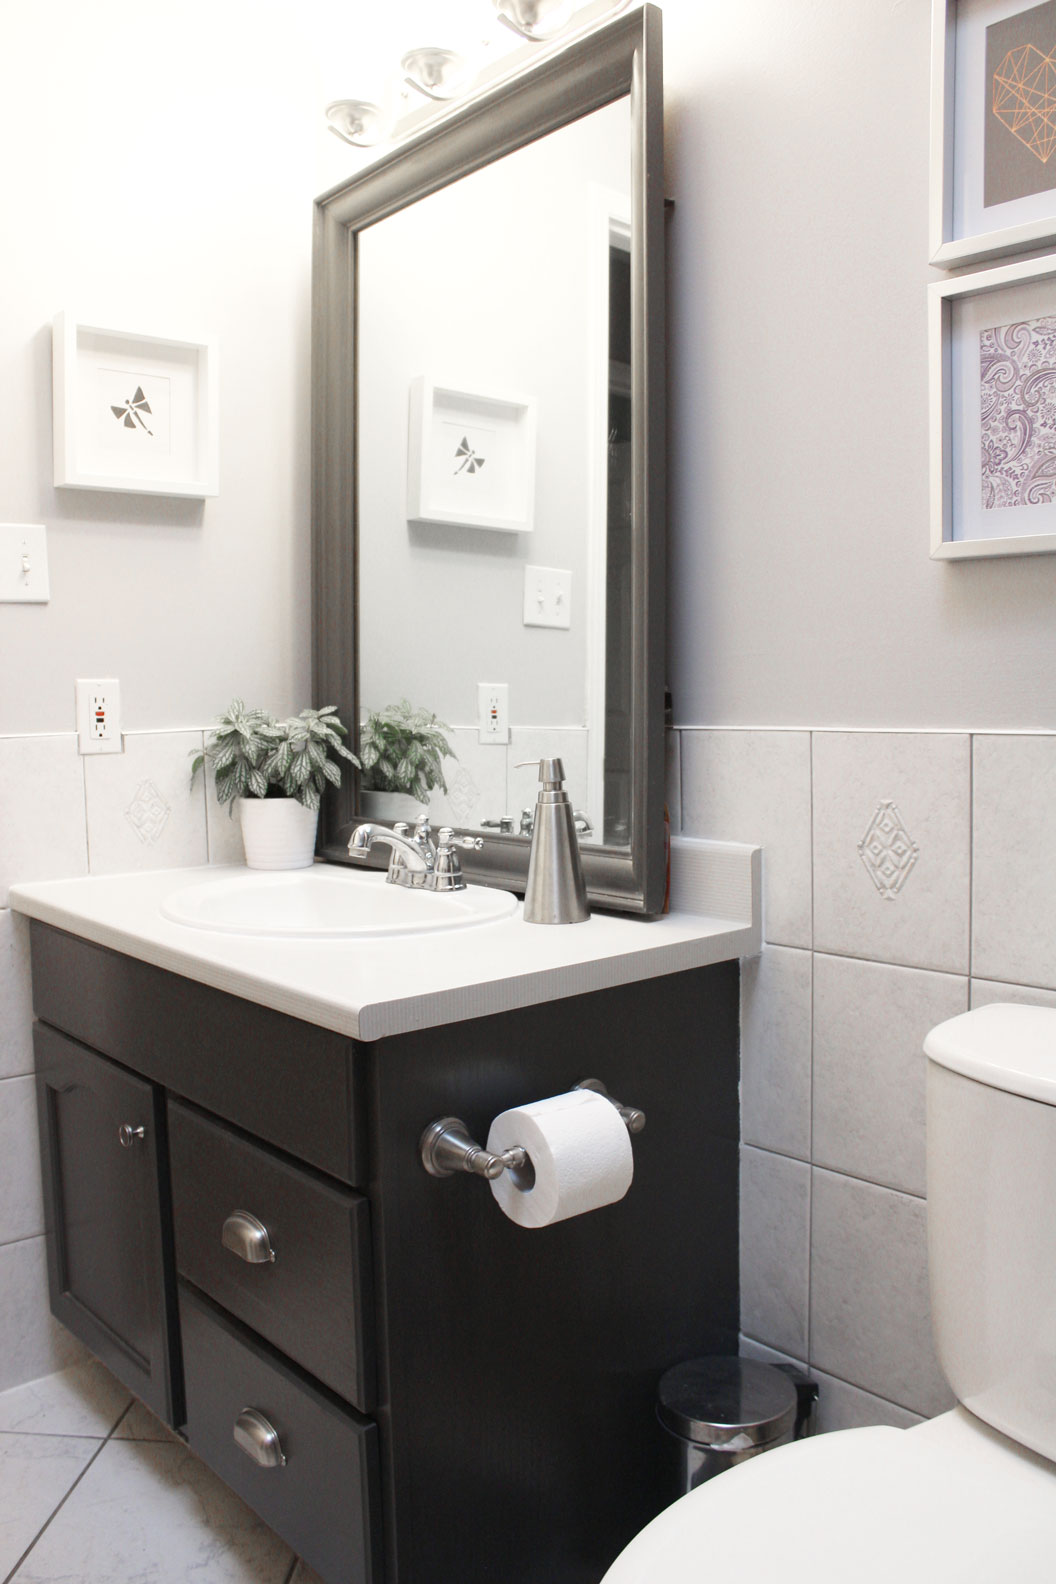 Updating A Bathroom On A Small Budget Nikki S Plate